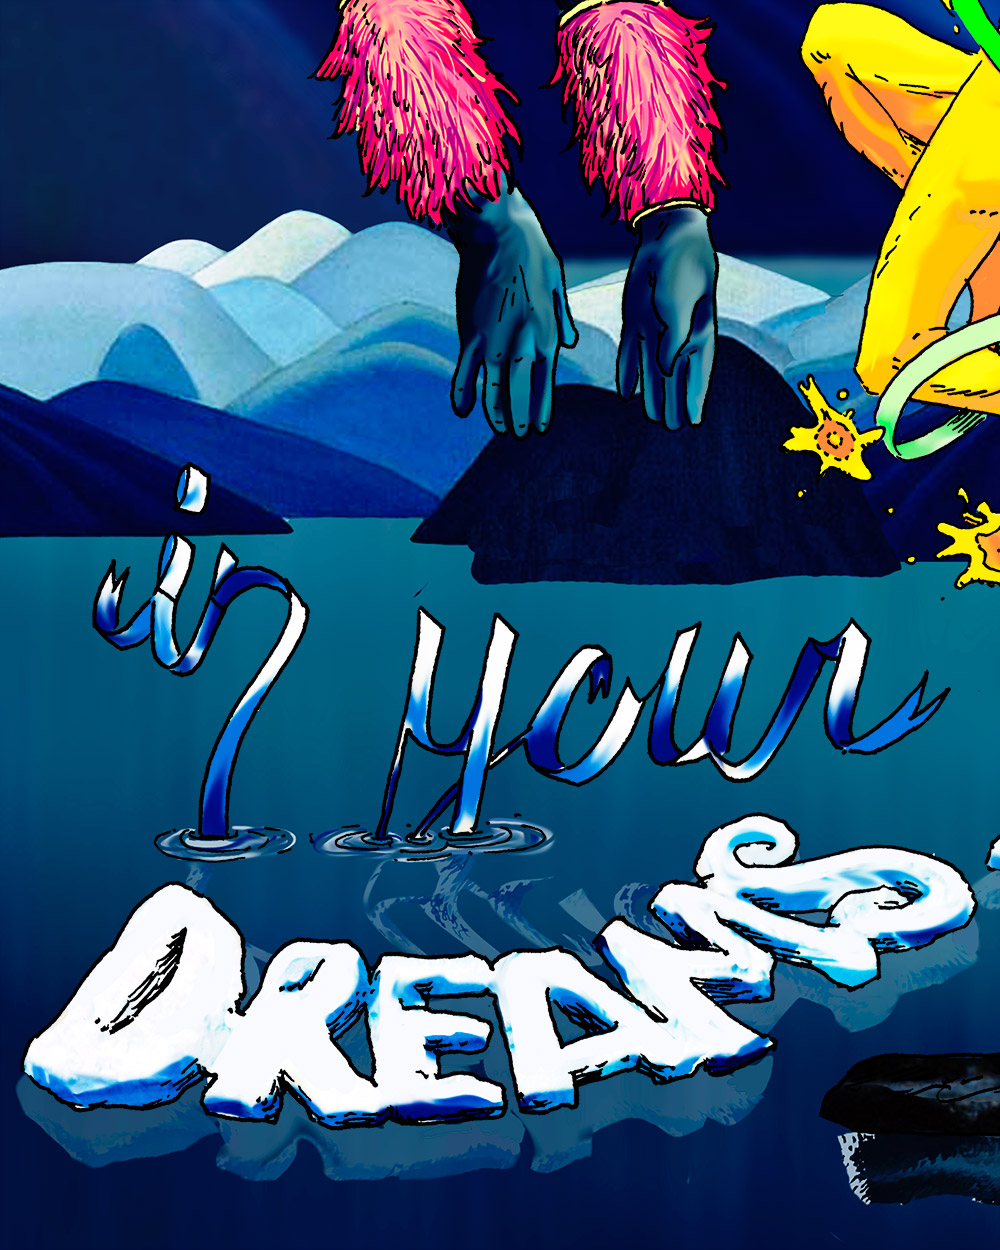 """Detail of """"Aware of How I Appear in Your Dreams"""" art by Marc Ngui, part of the Meme Swarm series of images."""